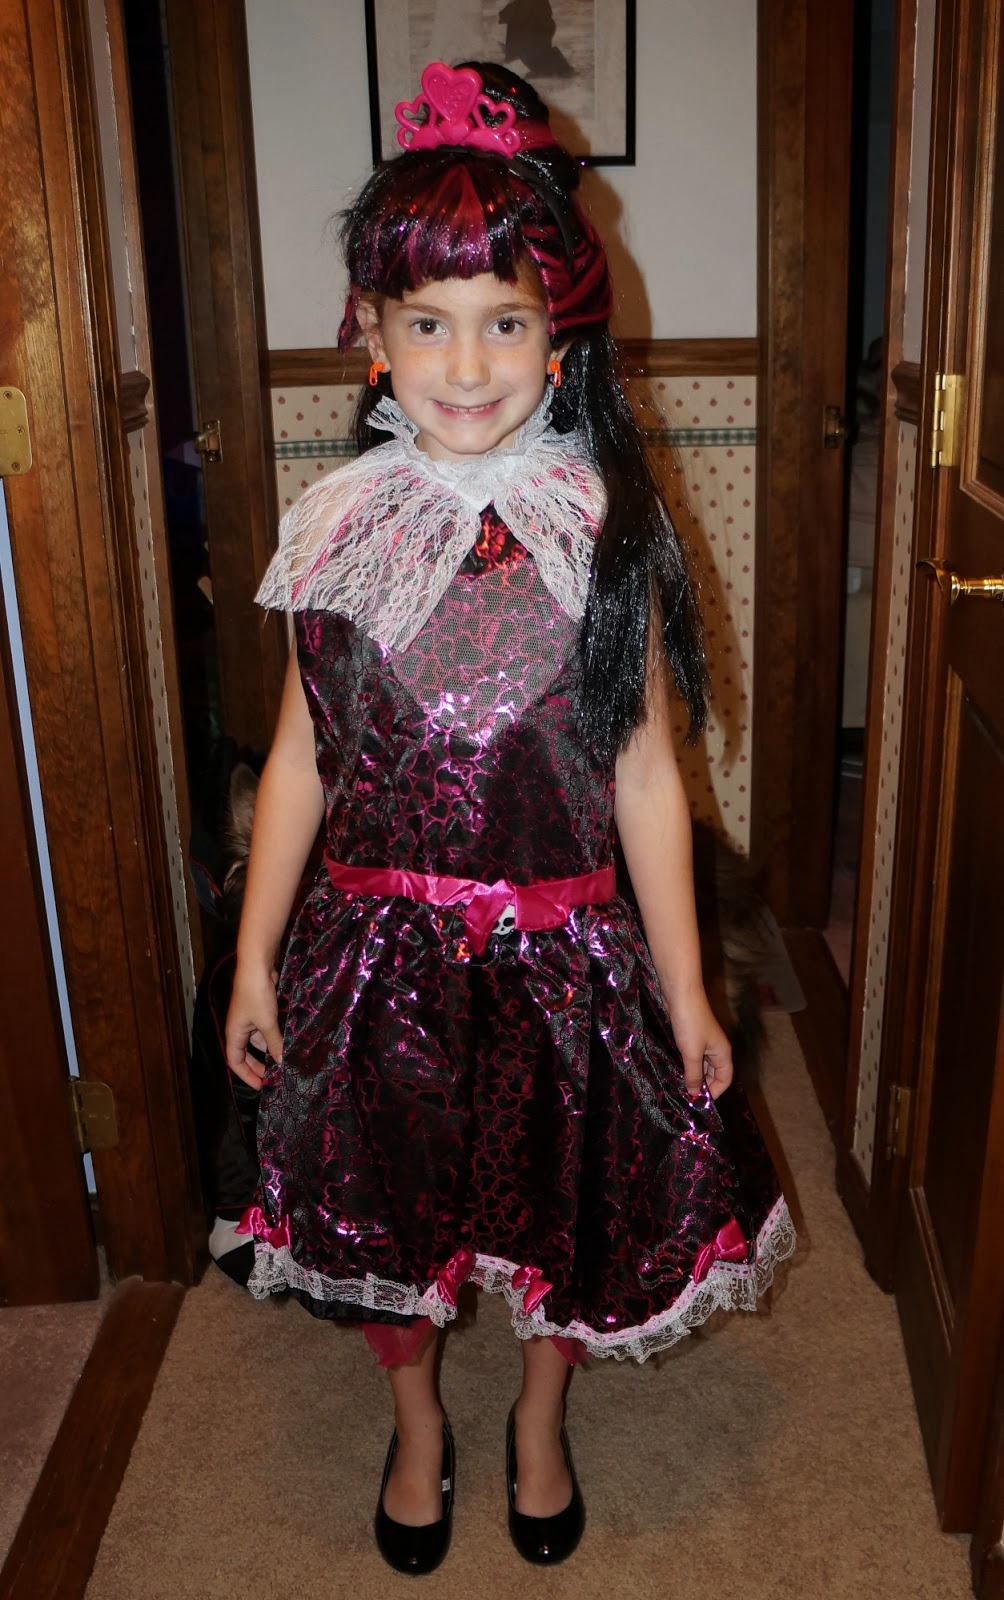 evan and lauren's cool blog: 10/11/13: monster high costume from